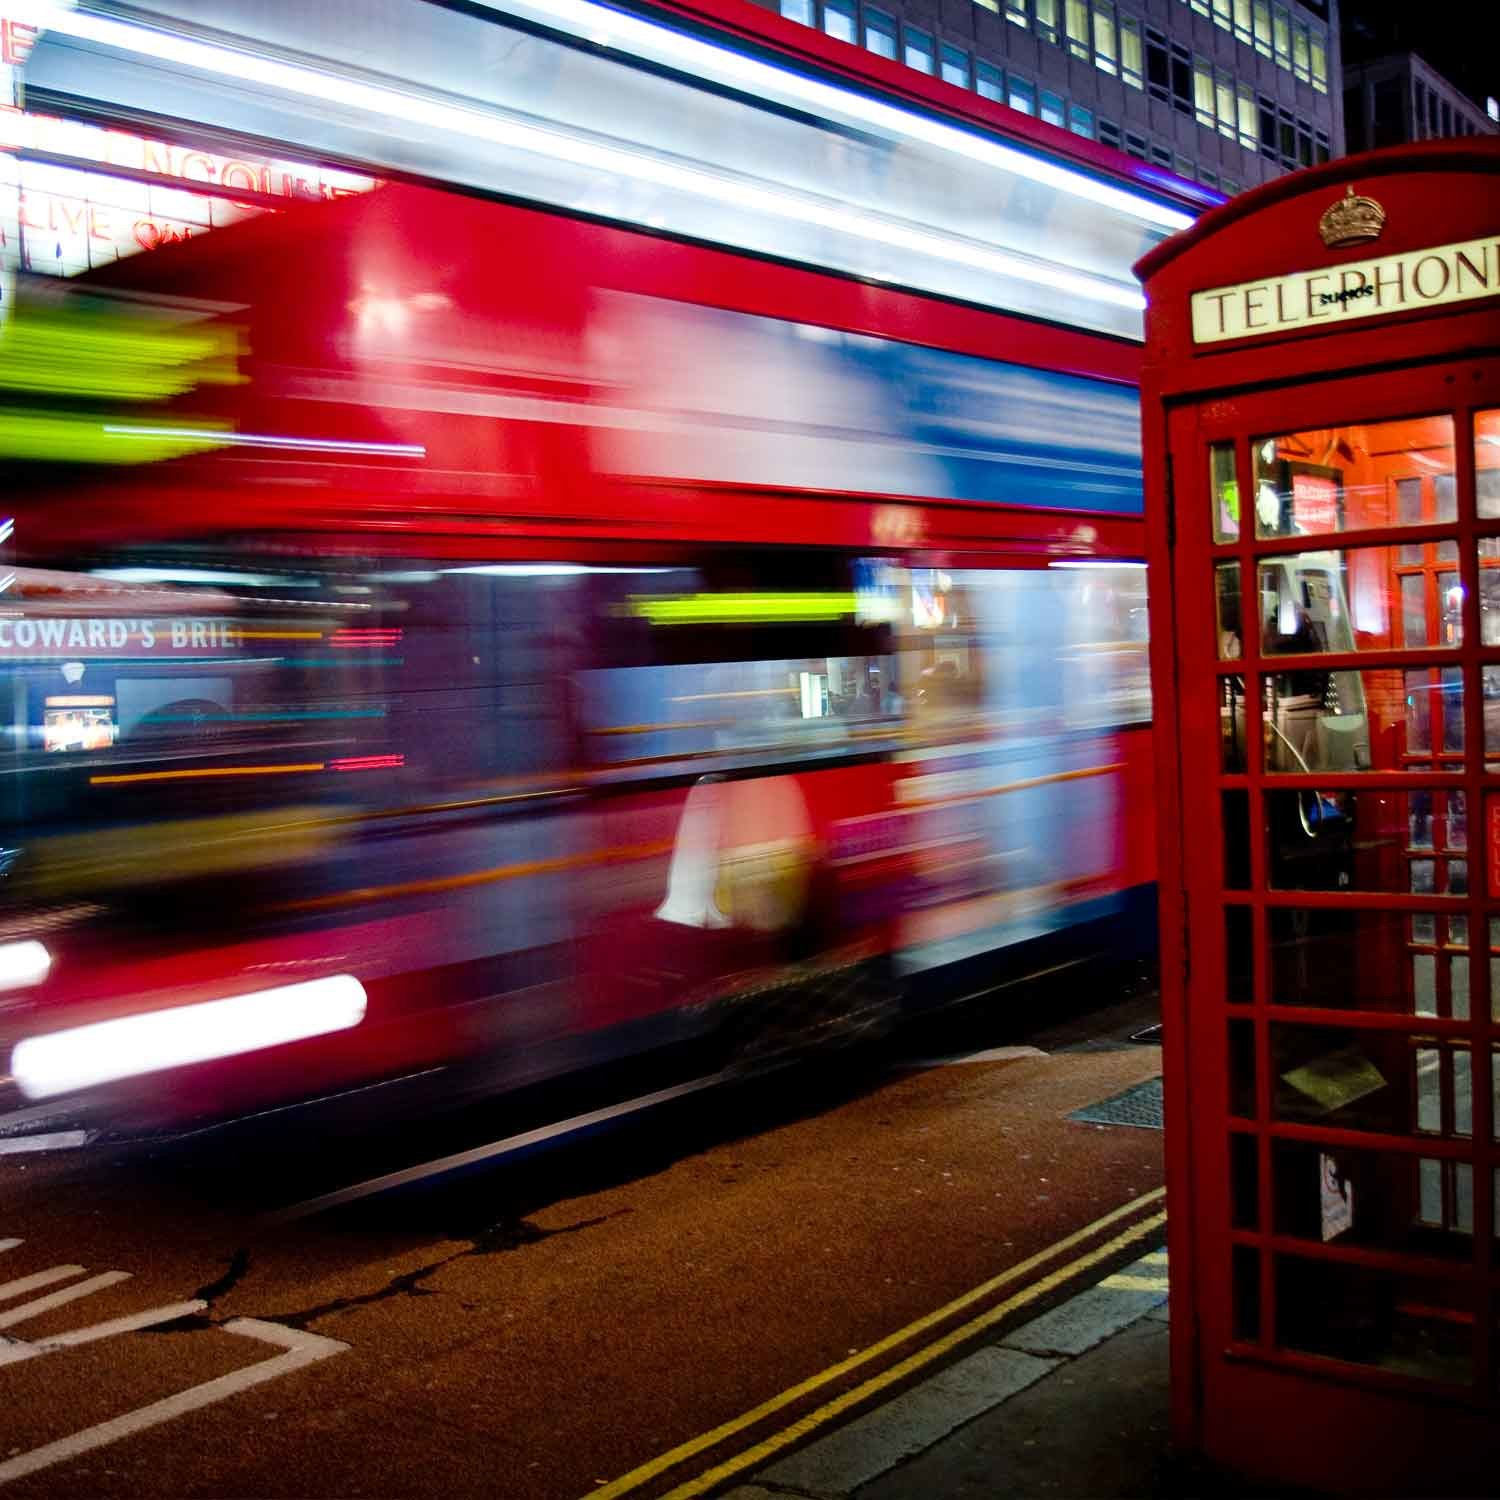 A London bus passes a telephone box on Haymarket.